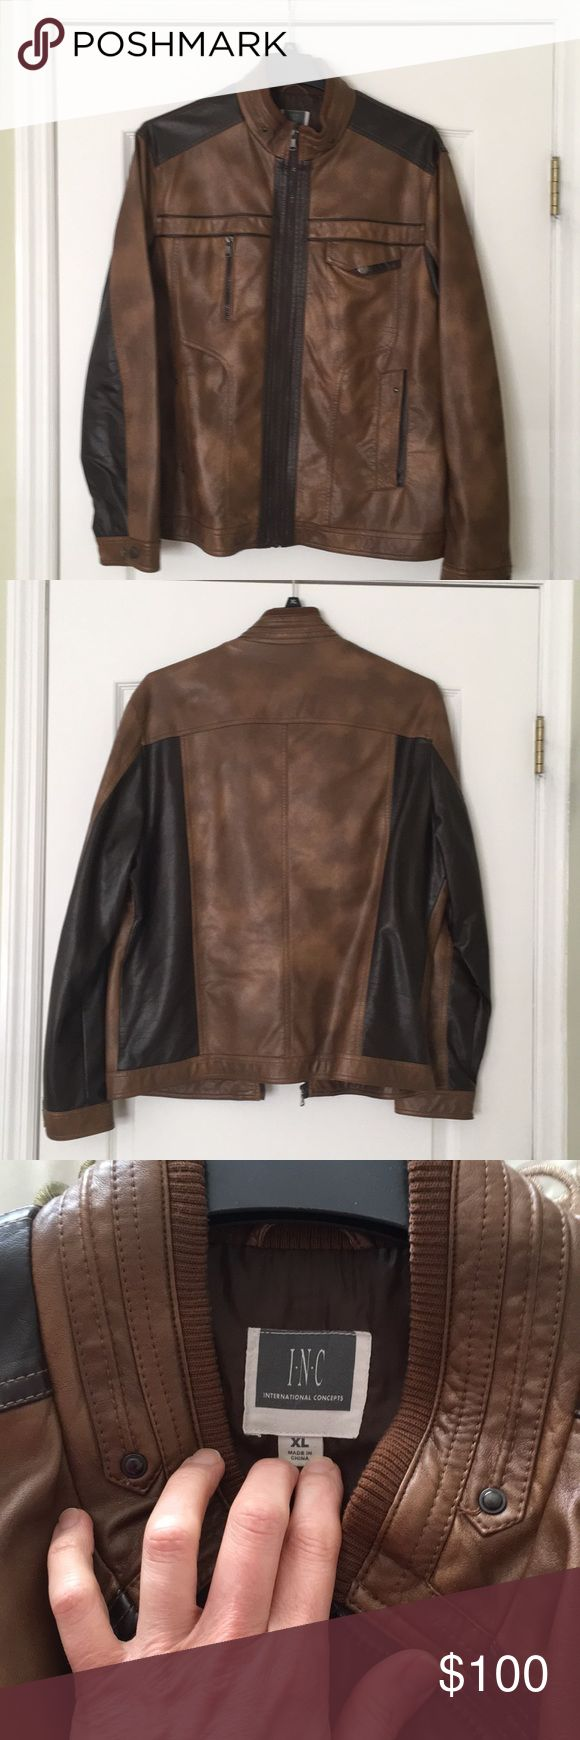 Two tone brown faux leather men's jacket. Two-tone brown faux leather men's jacket INC International Concepts Jackets & Coats Lightweight & Shirt Jackets